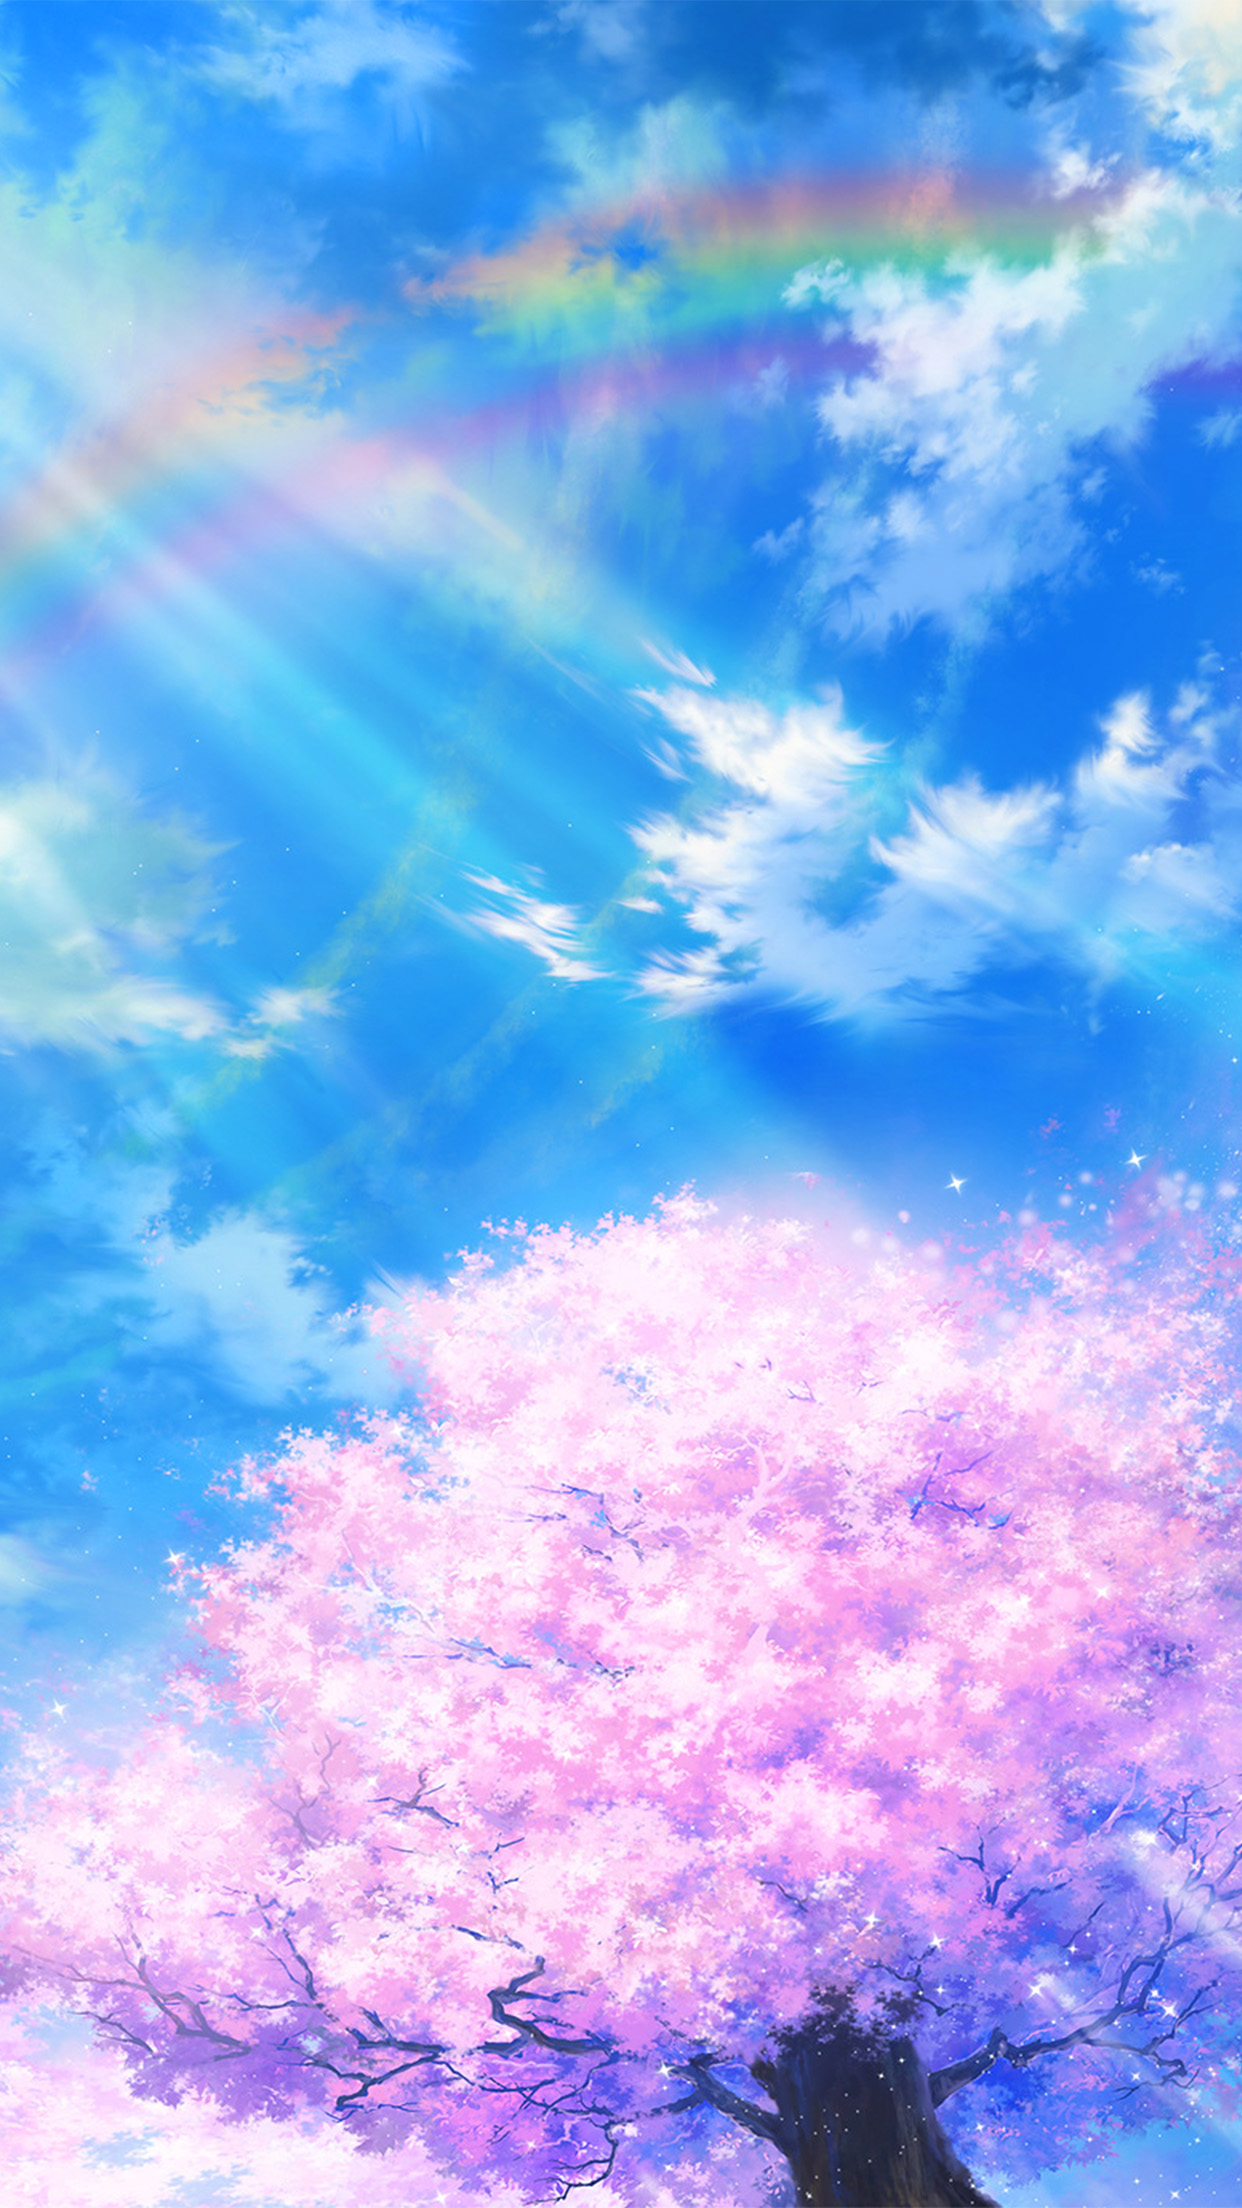 Bd75-anime-sky-cloud-spring-art-illustration-wallpaper